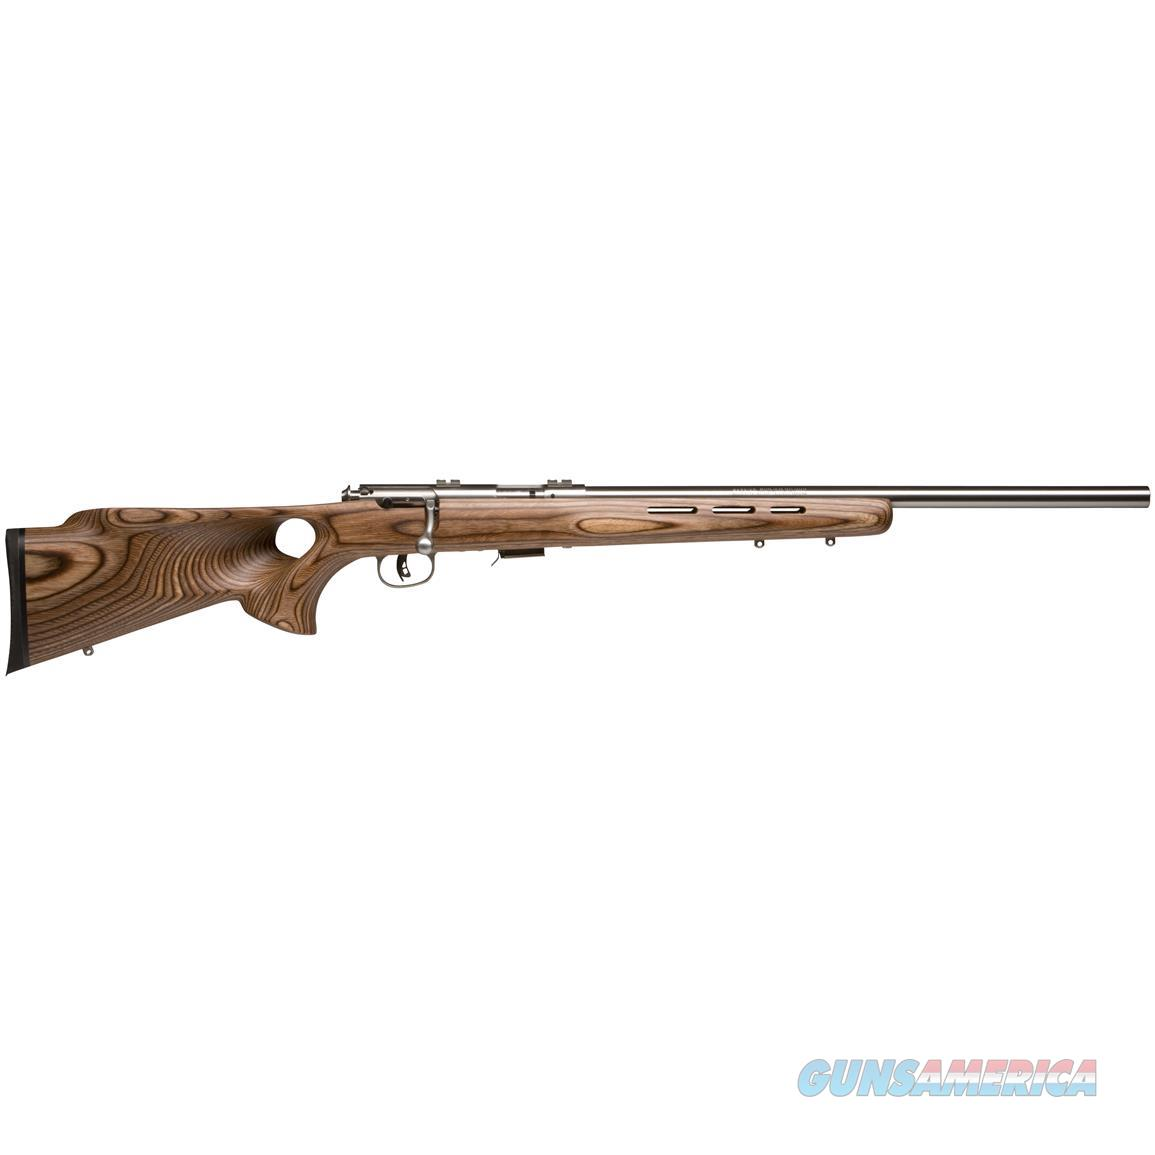 SAVAGE ARMS 93R17 BTVSS THUMBHOLE SS .17 HMR 96200  Guns > Rifles > Savage Rifles > Rimfire